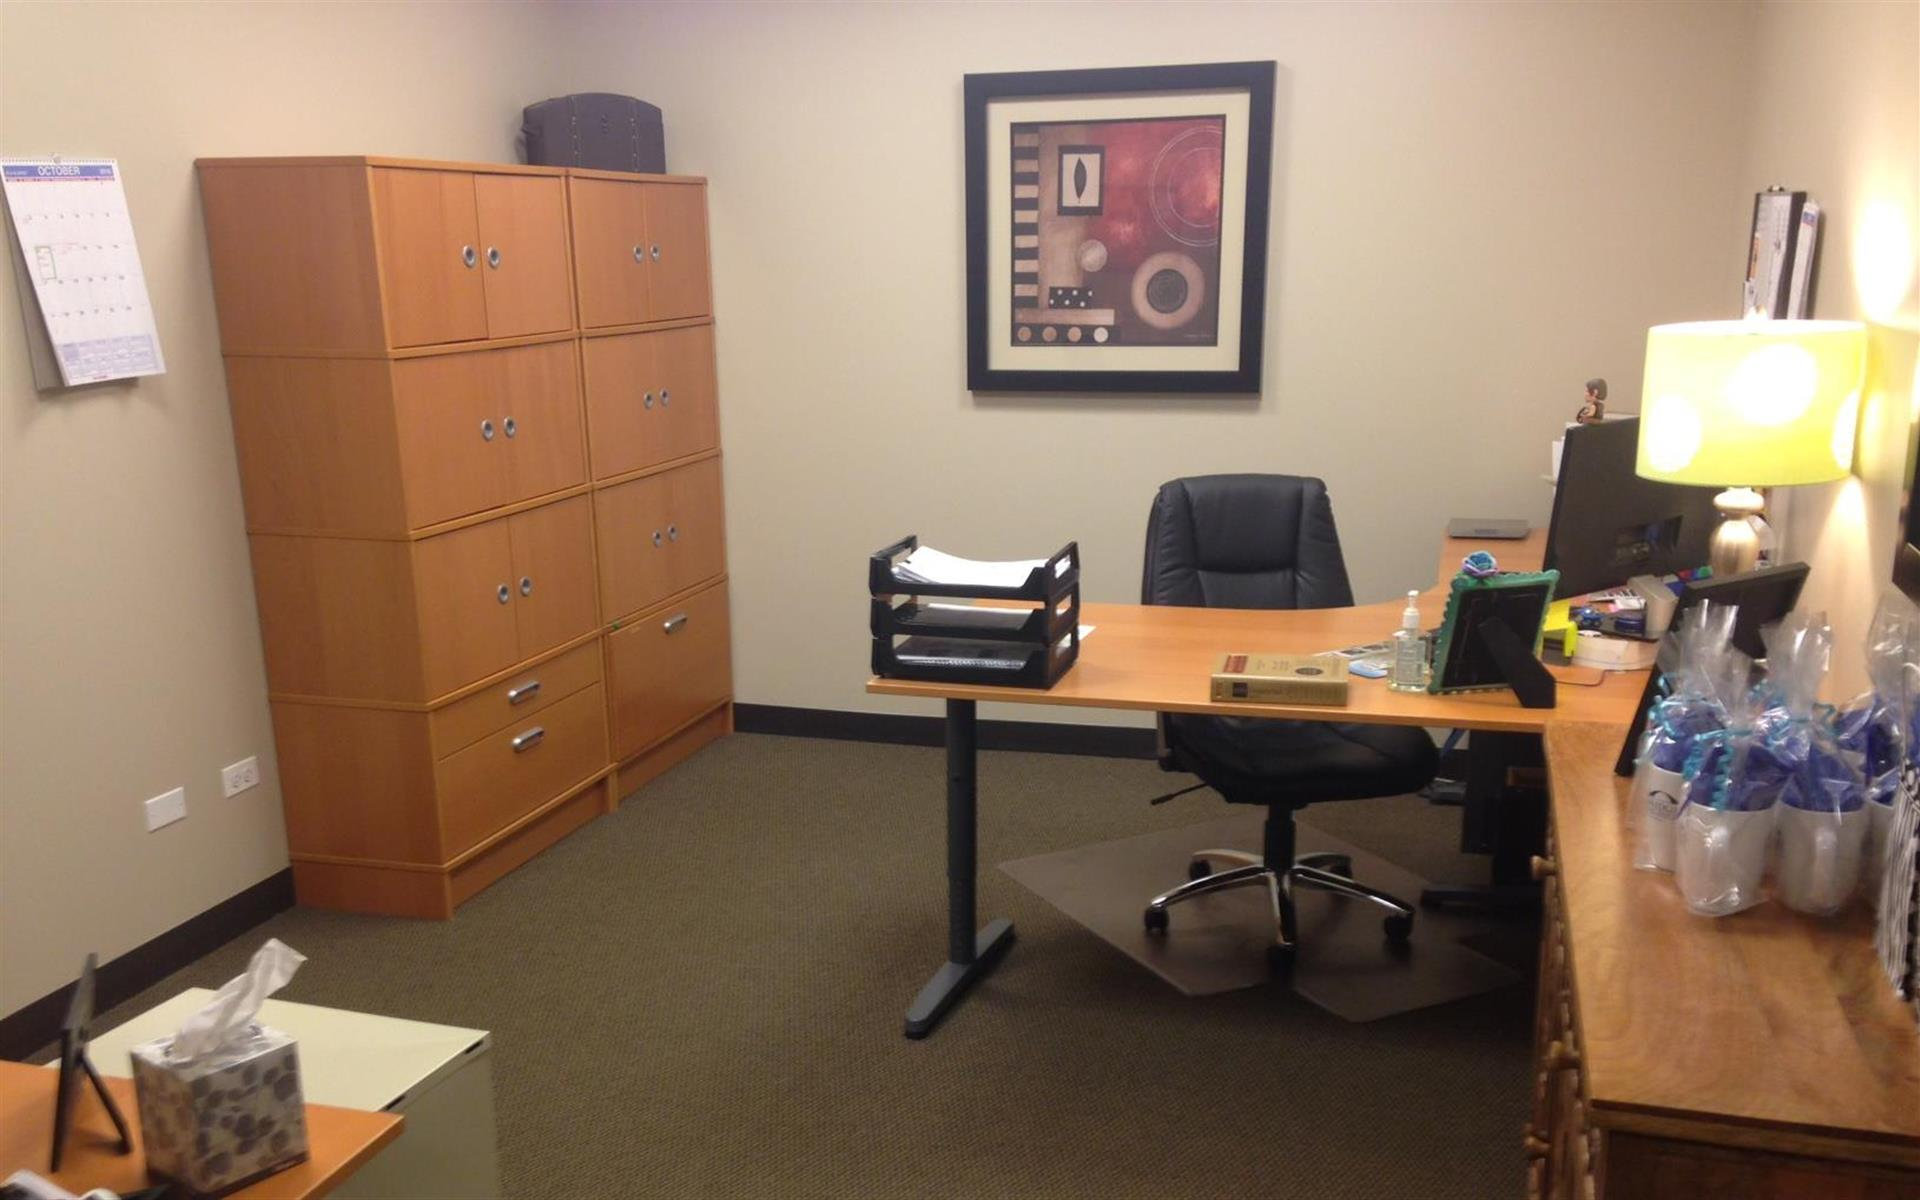 Bridges Court Reporting - Private Office Space 3 to 5 occupants